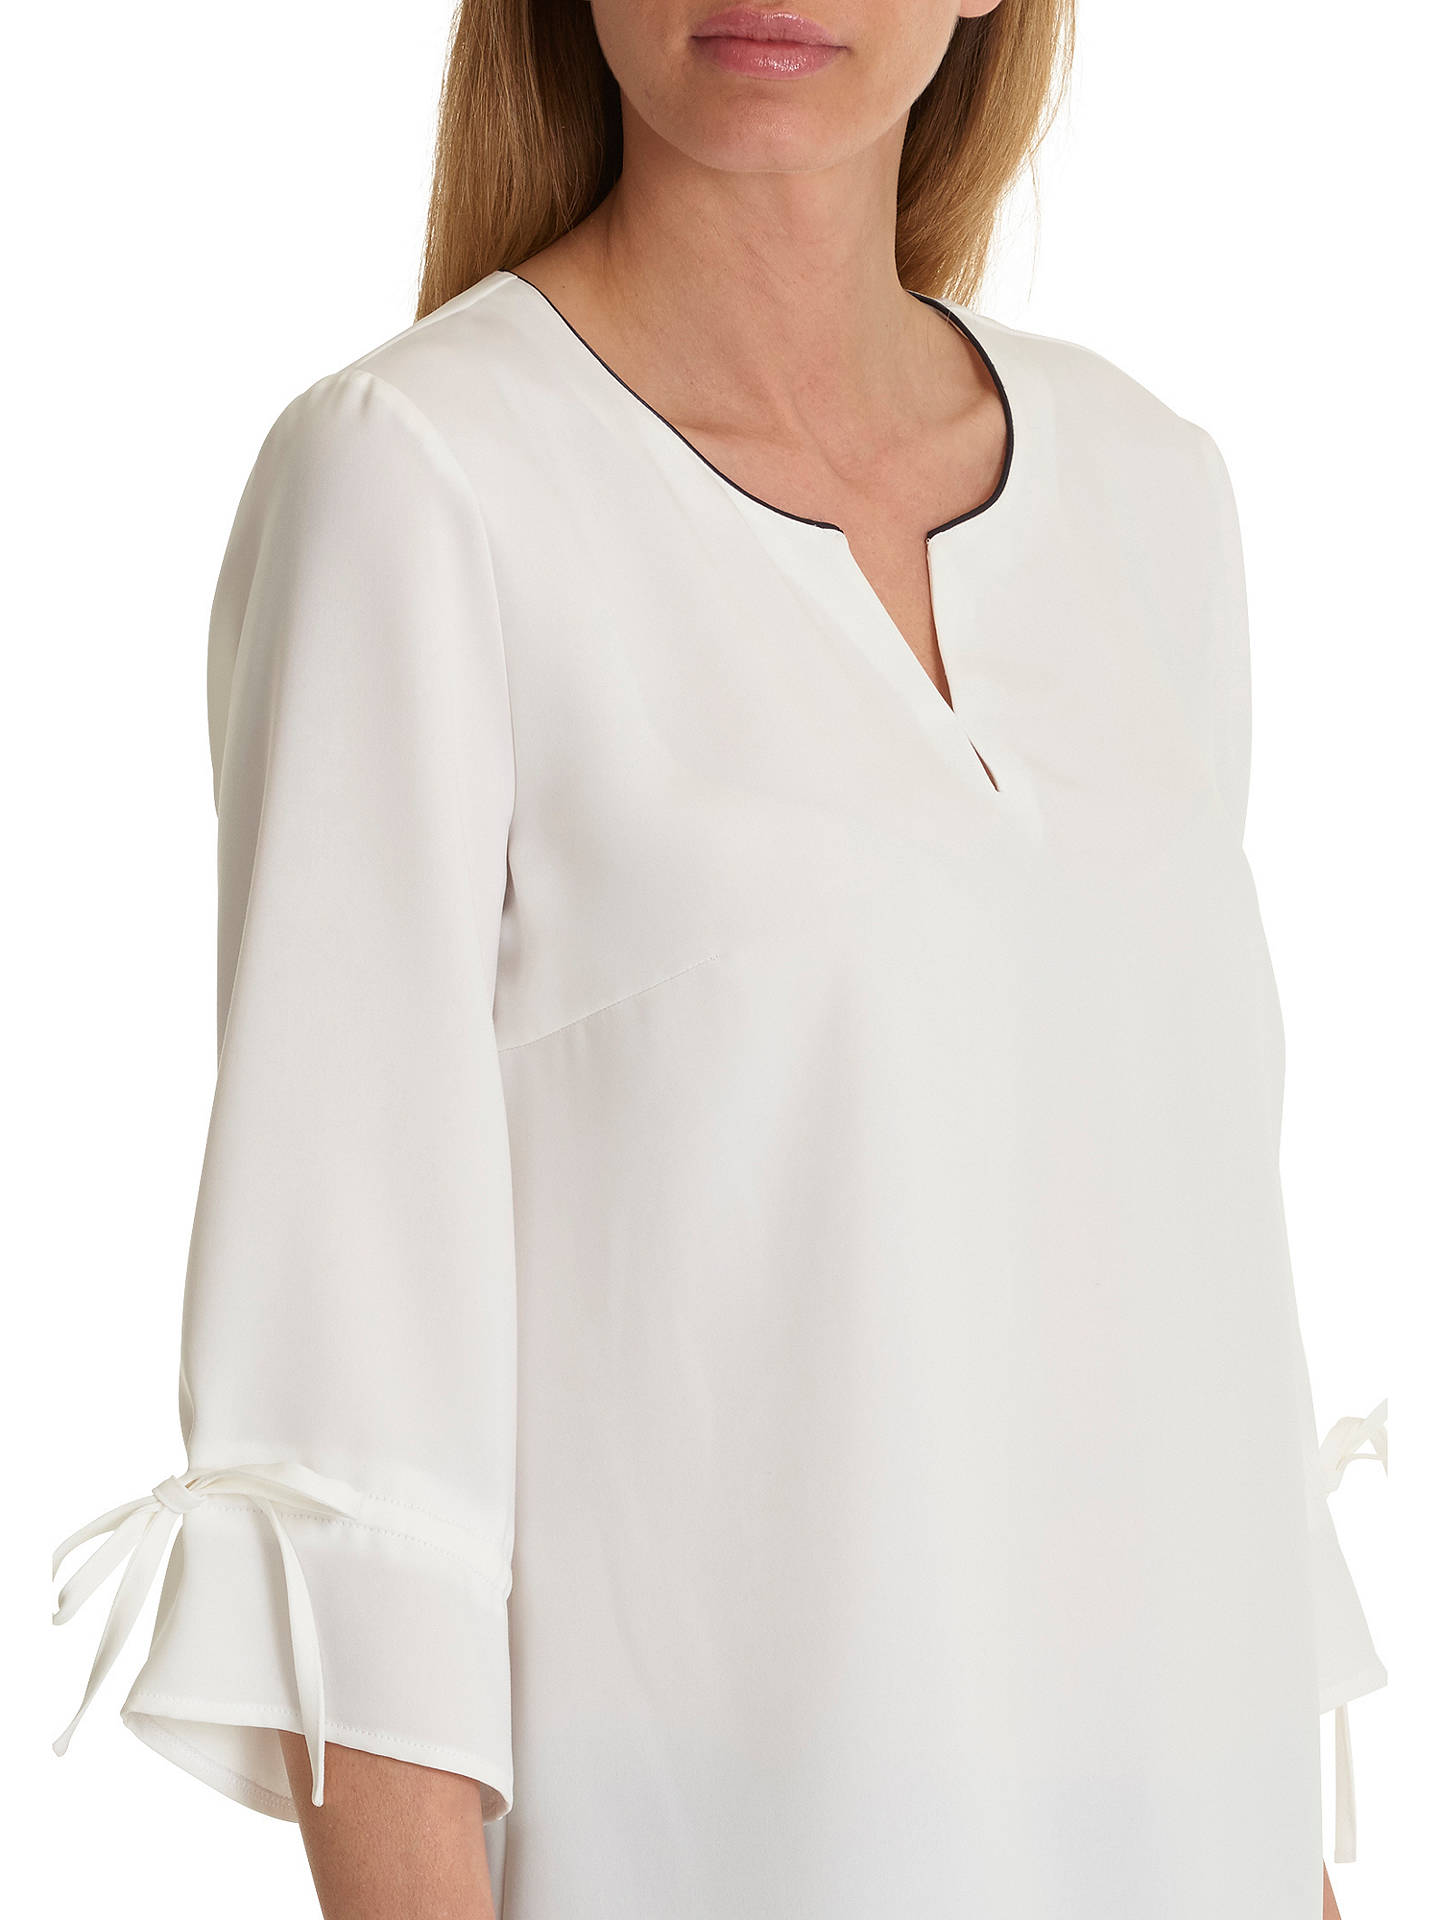 BuyBetty Barclay Crepe Blouse, Snow White, 10 Online at johnlewis.com